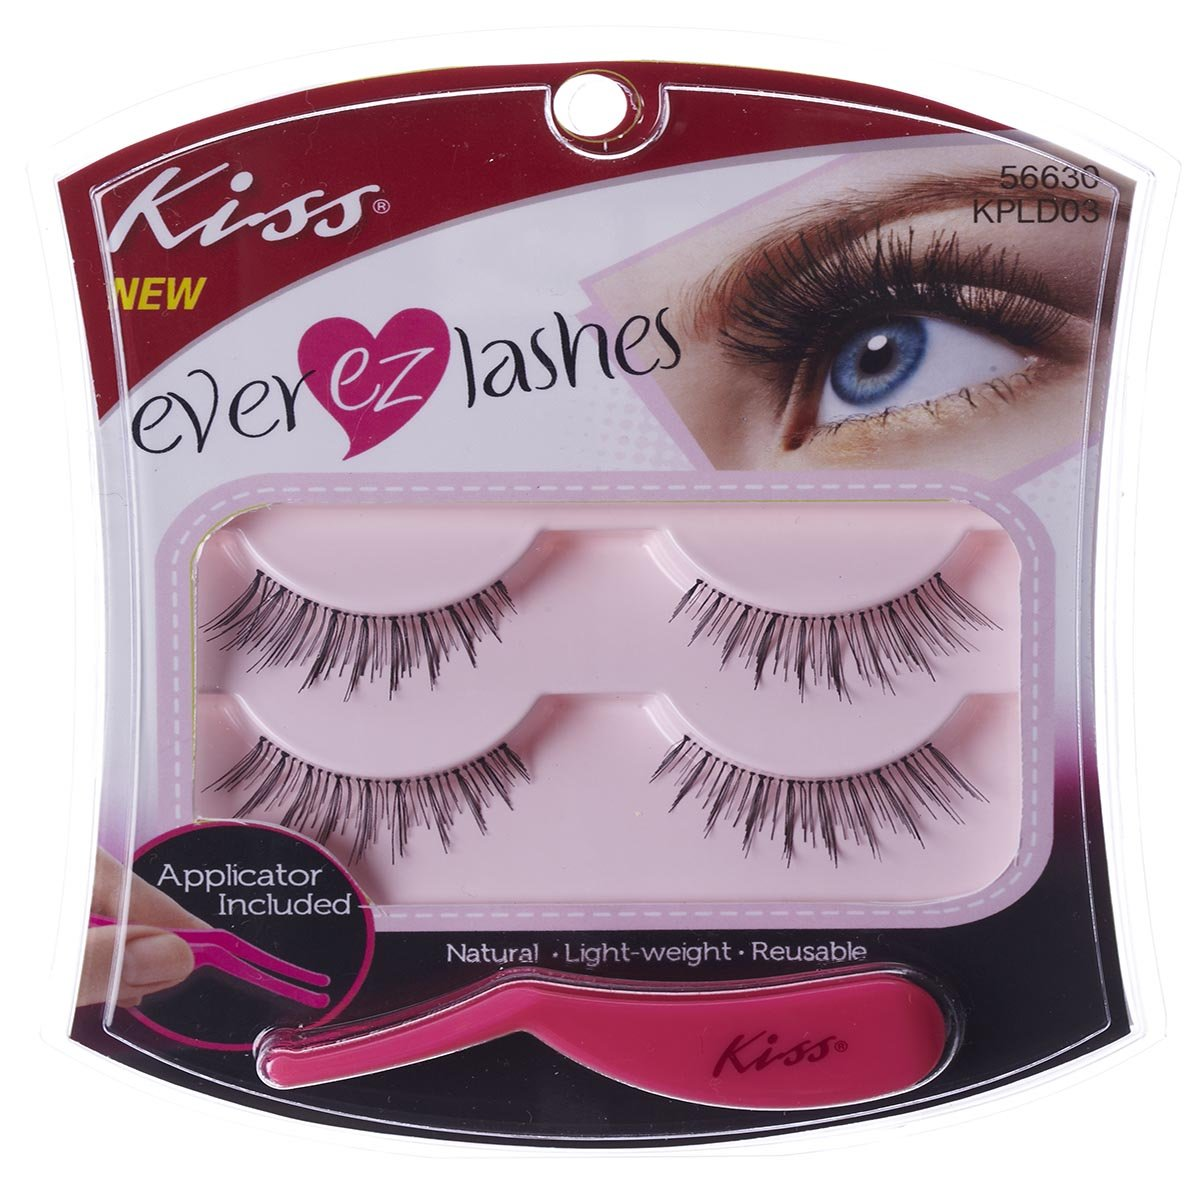 KISS EVER-EZ Lash Double Pack 02 (KPLD03)